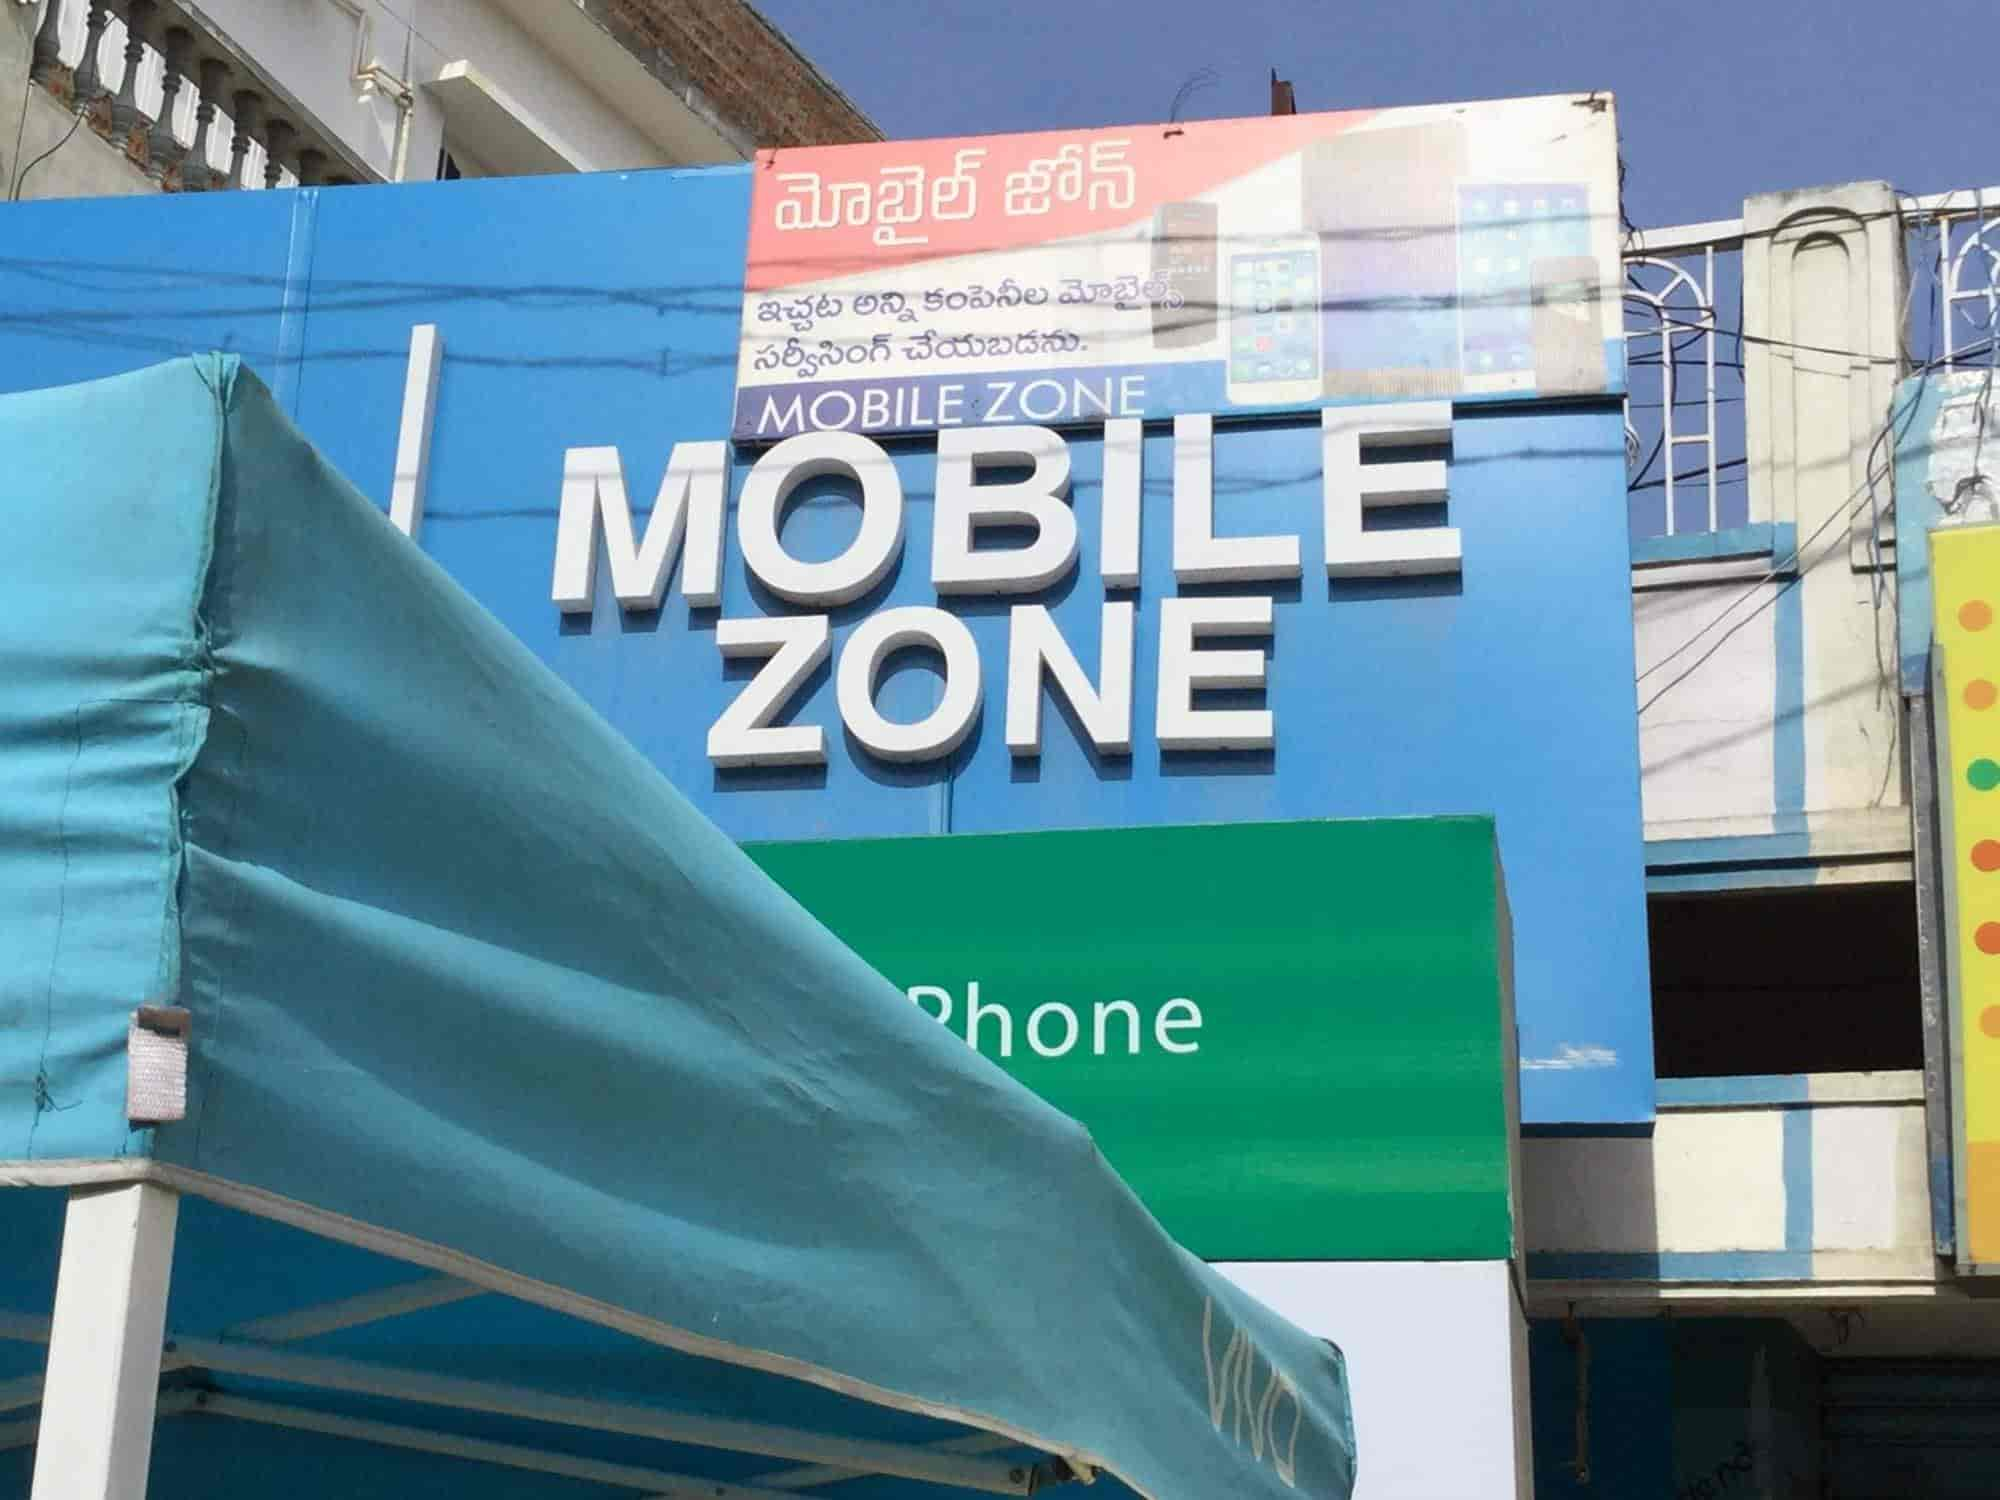 Mobili Zone Mobile Zona Photos Patel Road Madanapalle Pictures Images